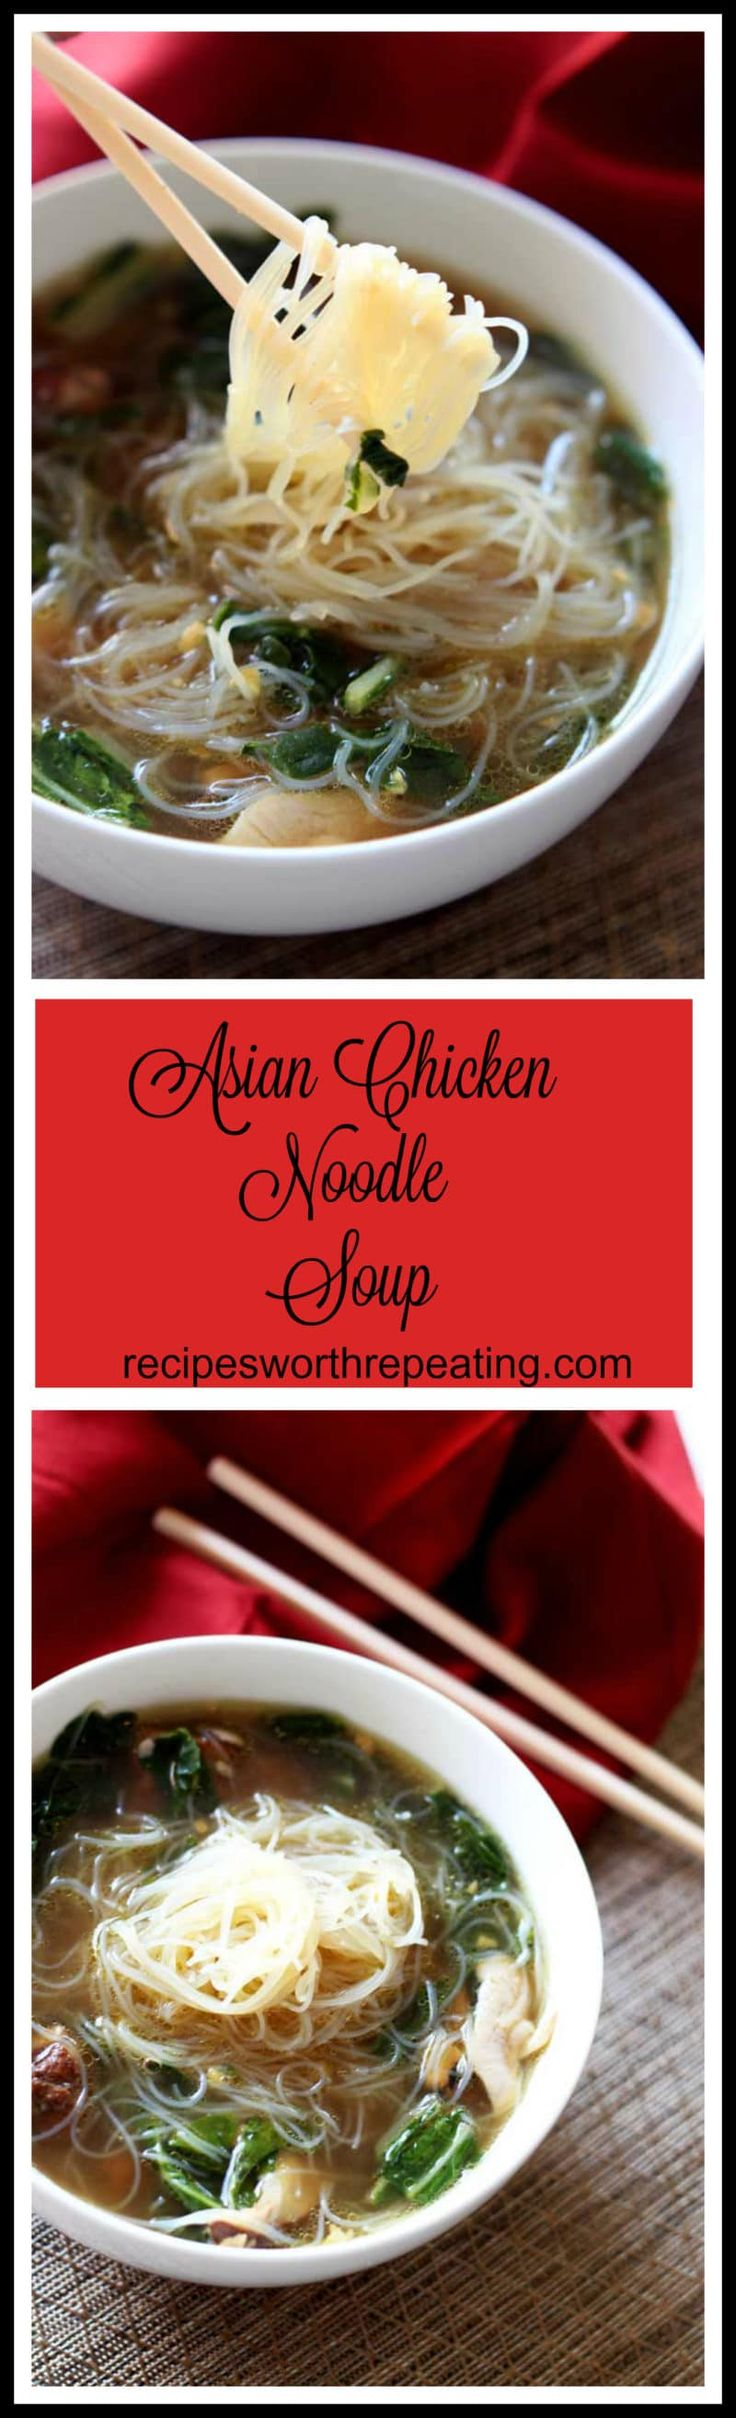 This Asian Chicken Noodle Soup has an amazing authentic taste! The chicken marinated in Chinese Five Spice makes it amazingly tender...it melts in your mouth! The gluten free Mei Fun in this savory soup paired with the fresh ginger and garlic makes this dish over the top! Nothing screams savory like homemade chicken noodle soup...especially with an Asian flair!!